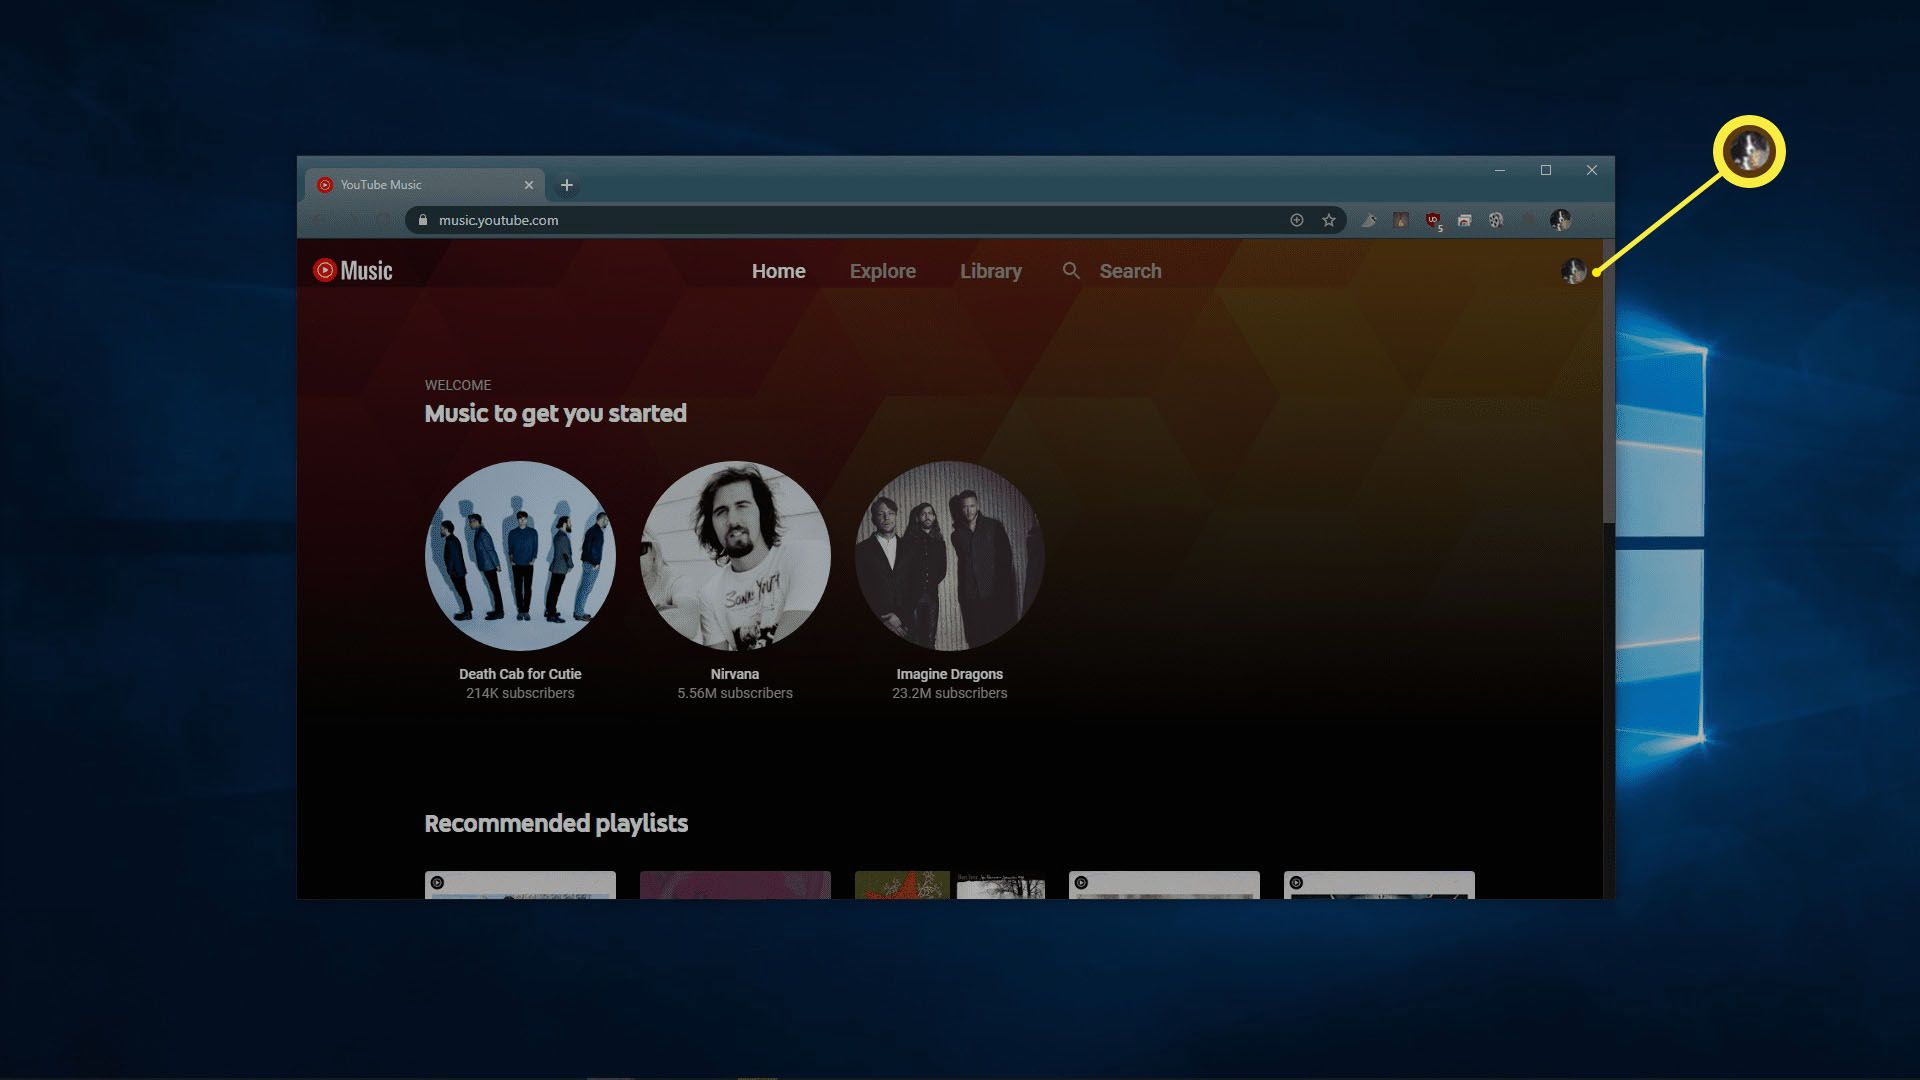 YouTube Music in a web browser.